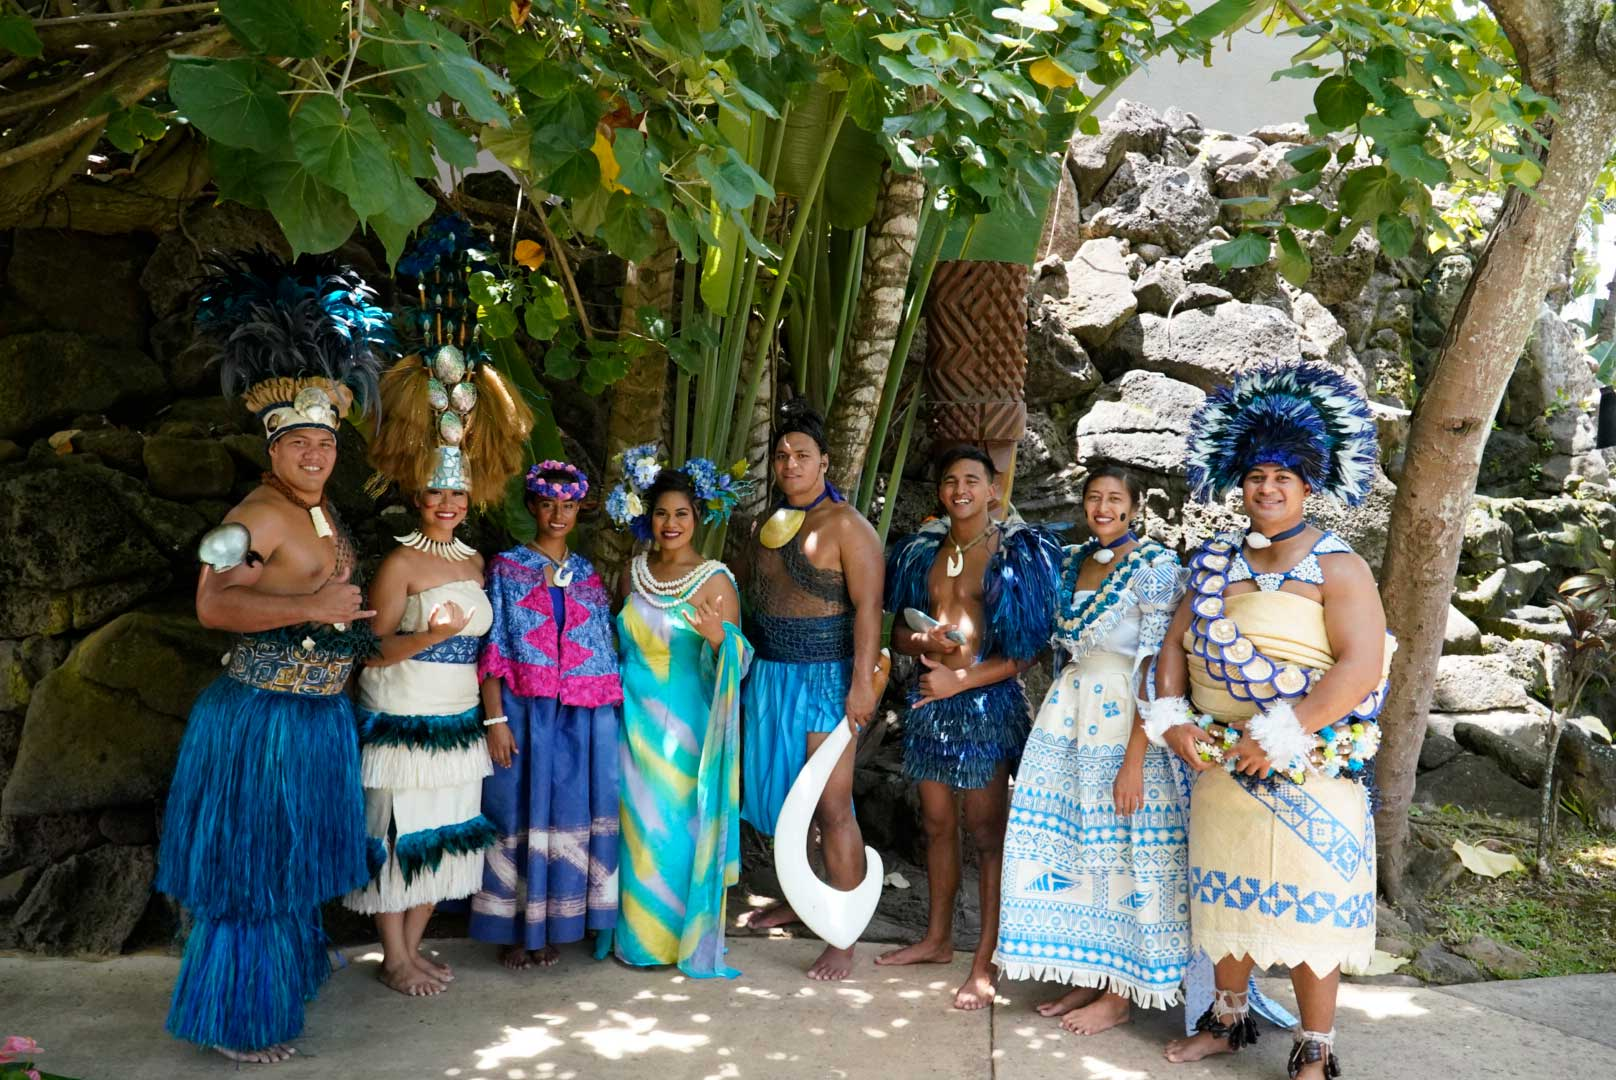 Cast members of Huki, including Mother Earth, demigod Maui and representatives of the Polynesian Cultural Center's six island villages, pose for picture following the inaugural show.